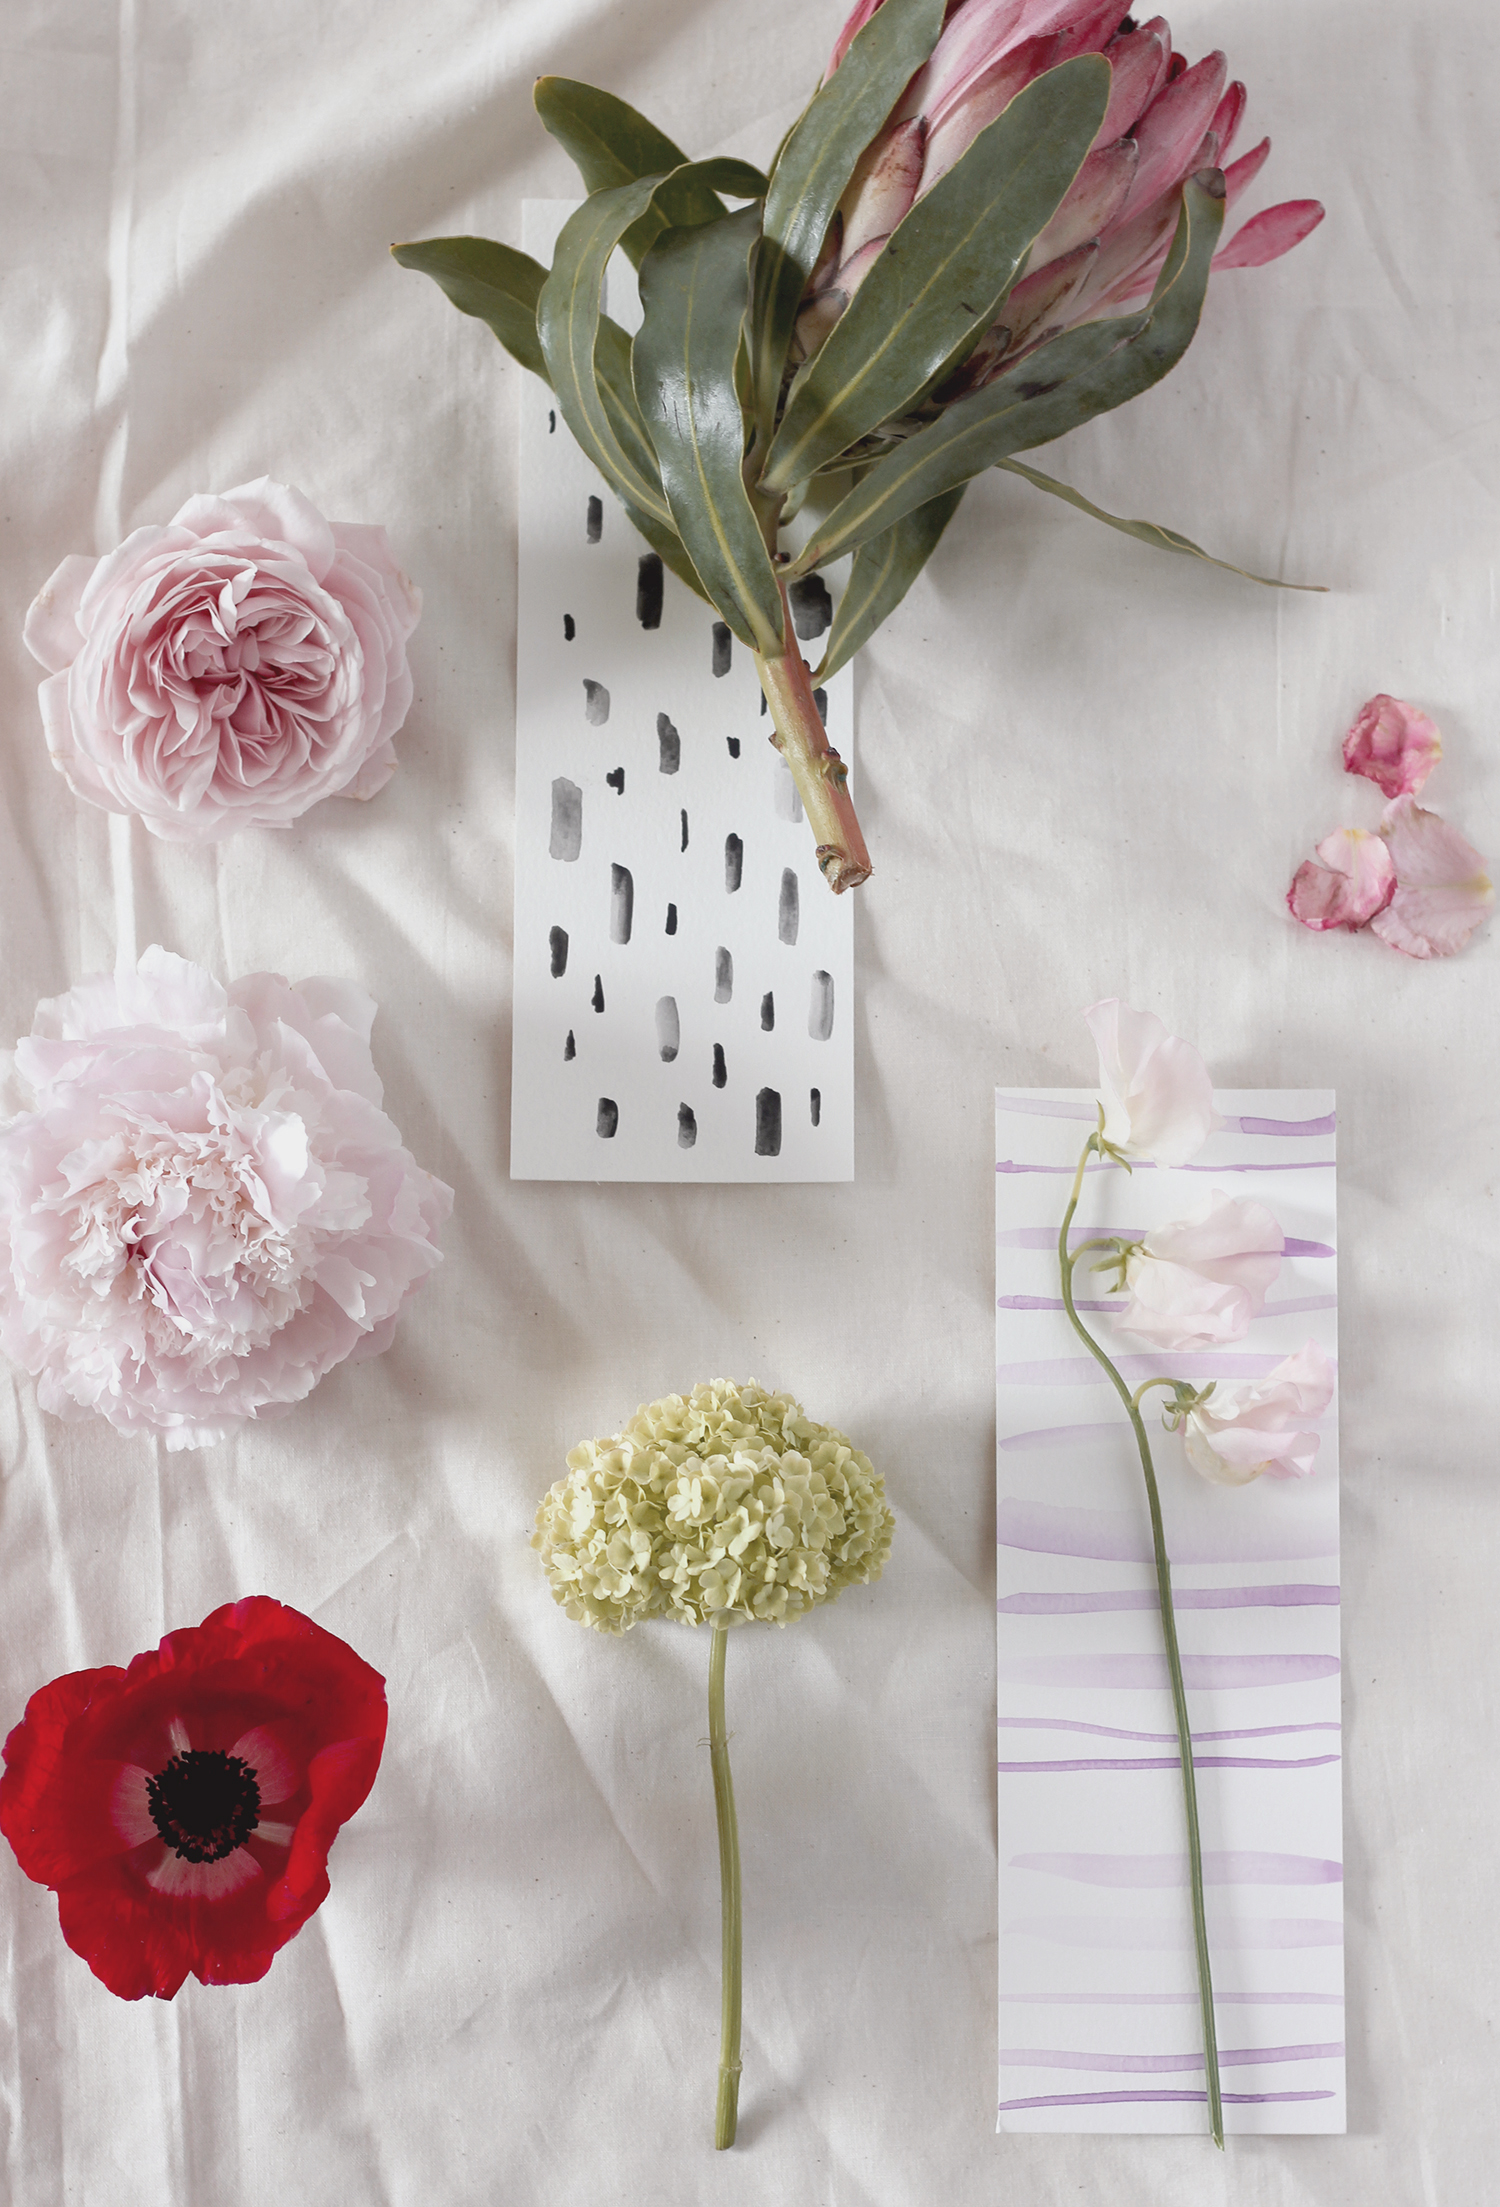 Tips on flowers to use in the spring   A Fabulous Fete